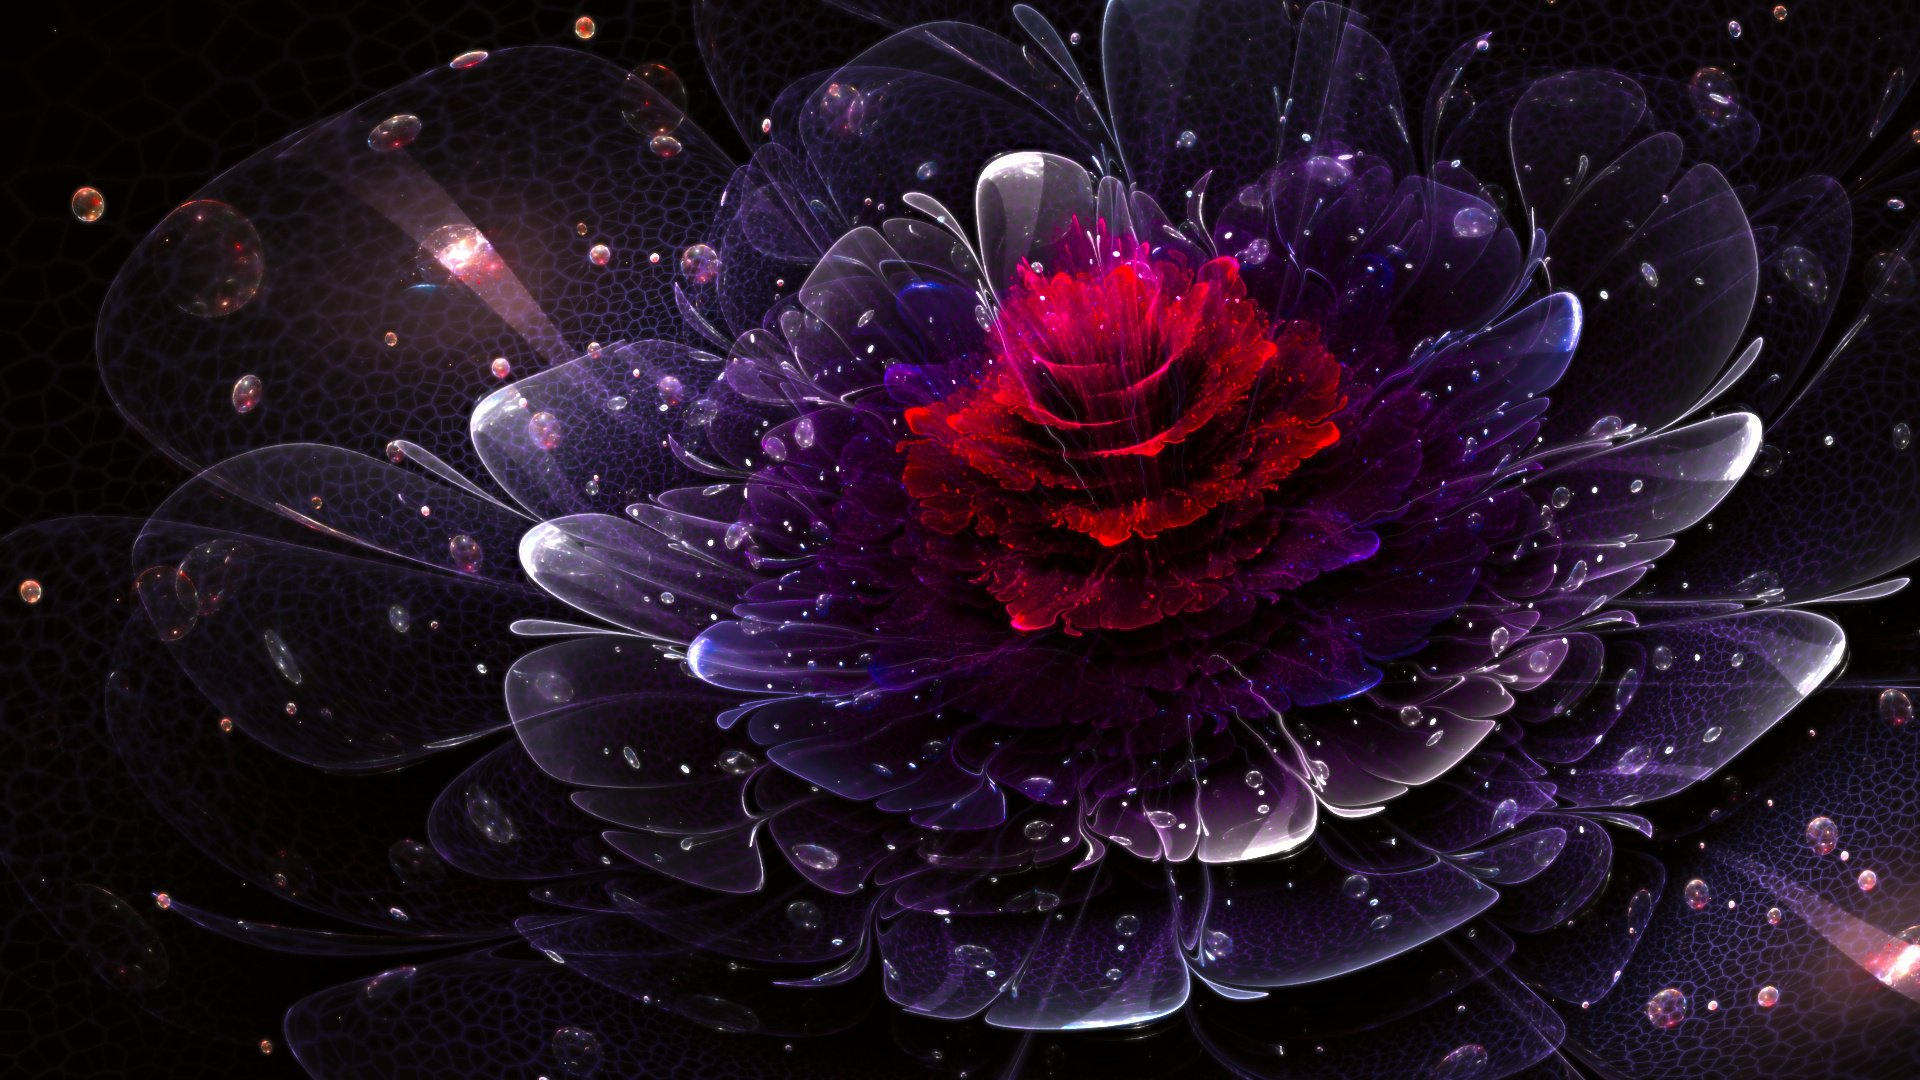 Abstract 3d graphics psychedelic wallpaper   1920x1080   849307   WallpaperUP